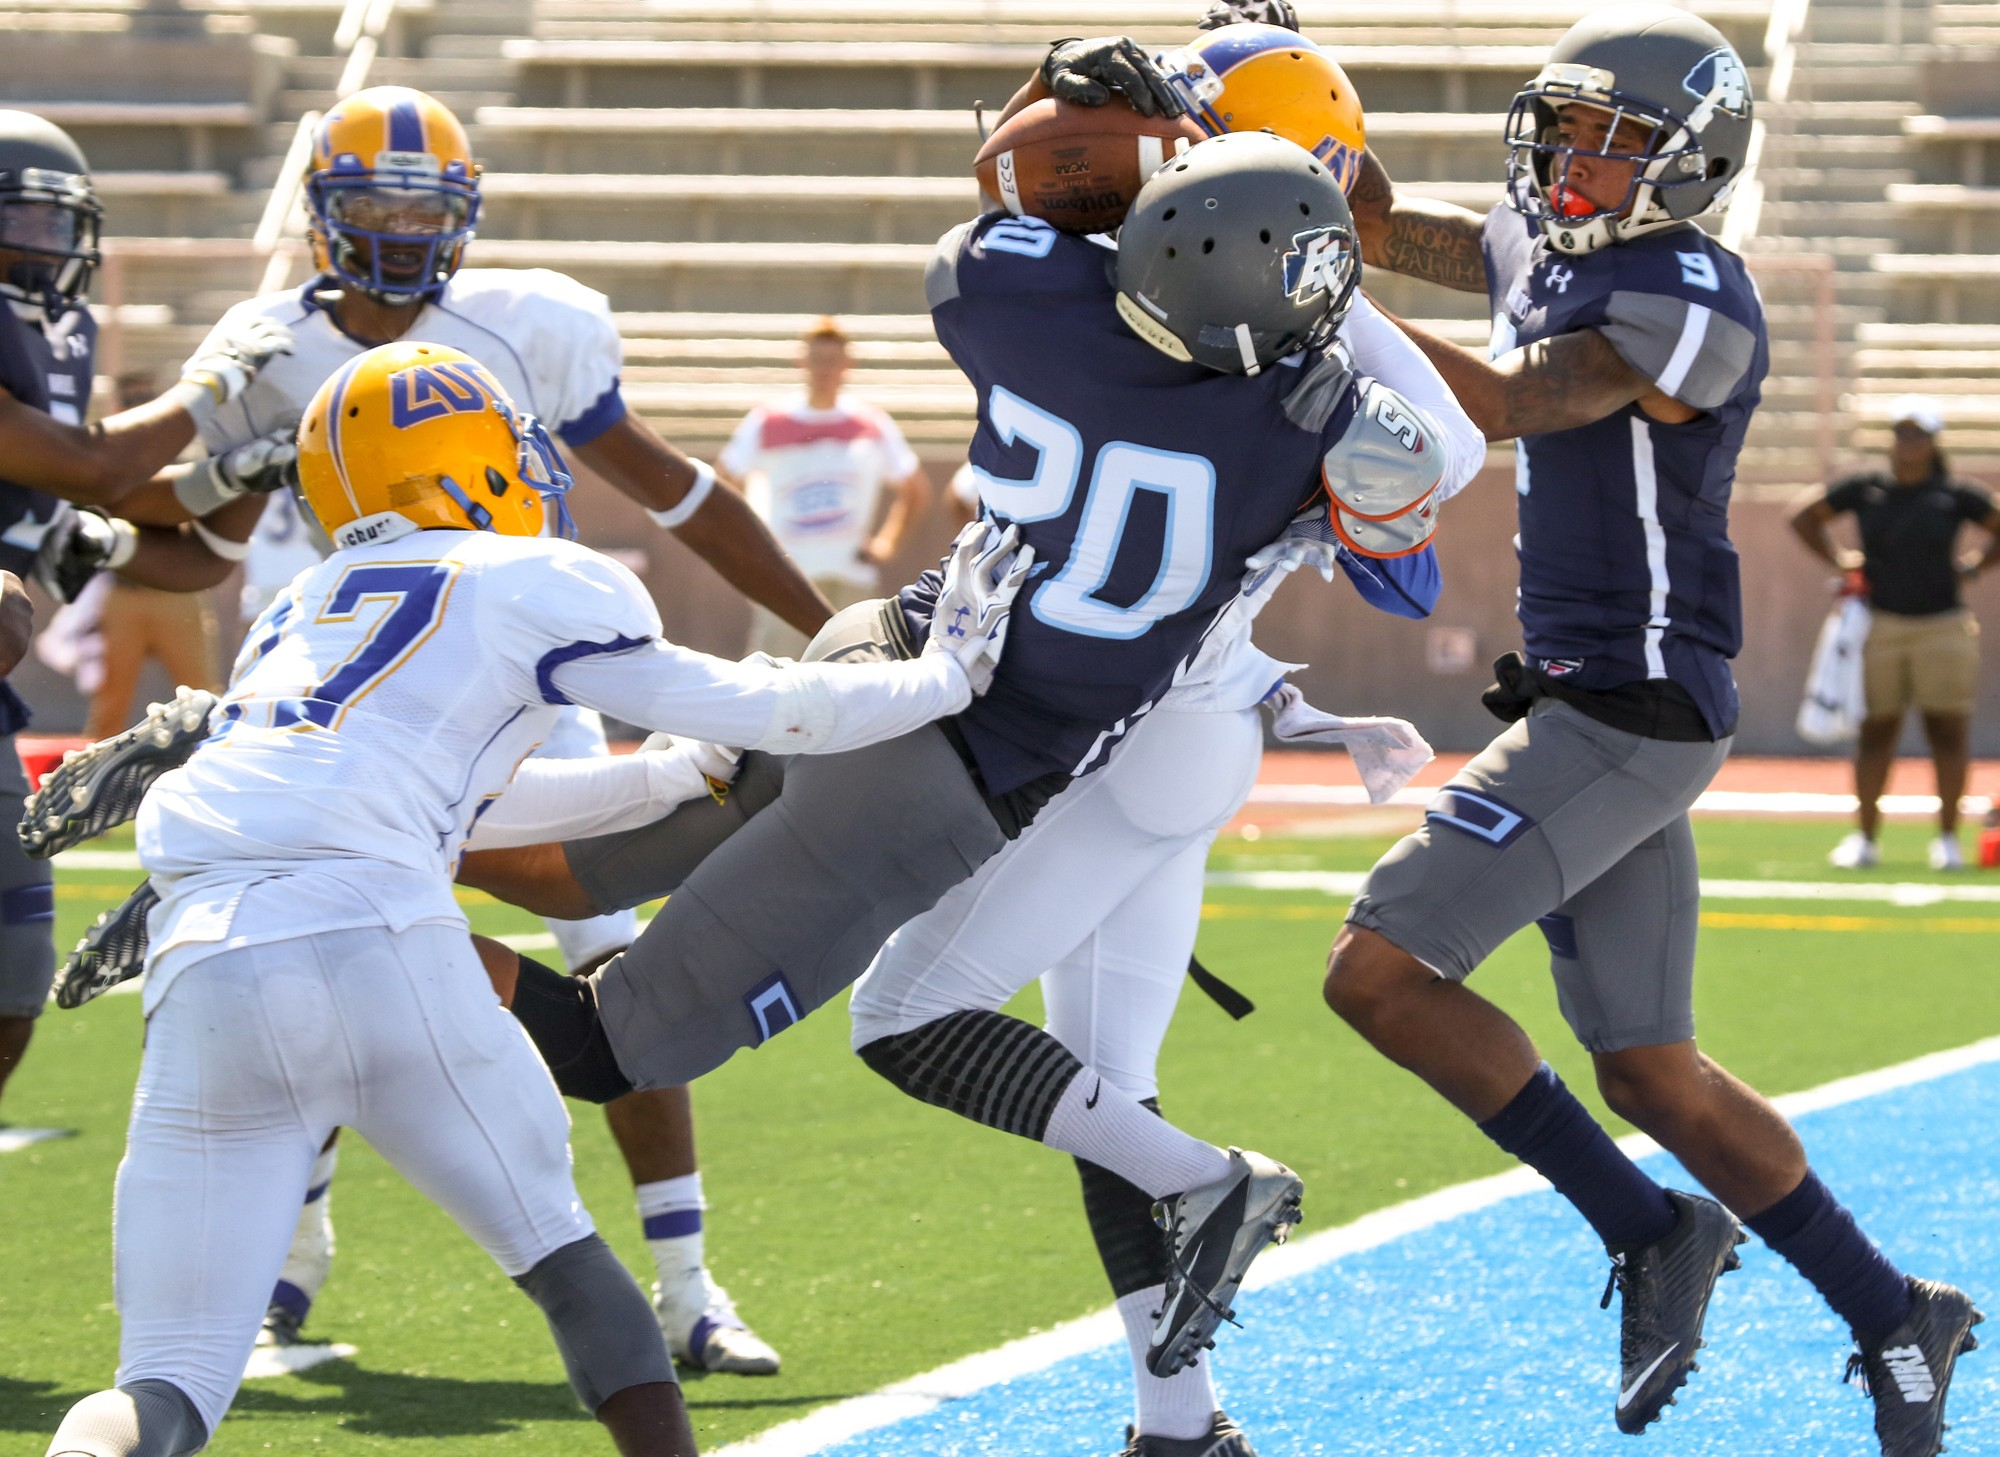 El Camino football opens the season with 41-21 win over L.A. Southwest College